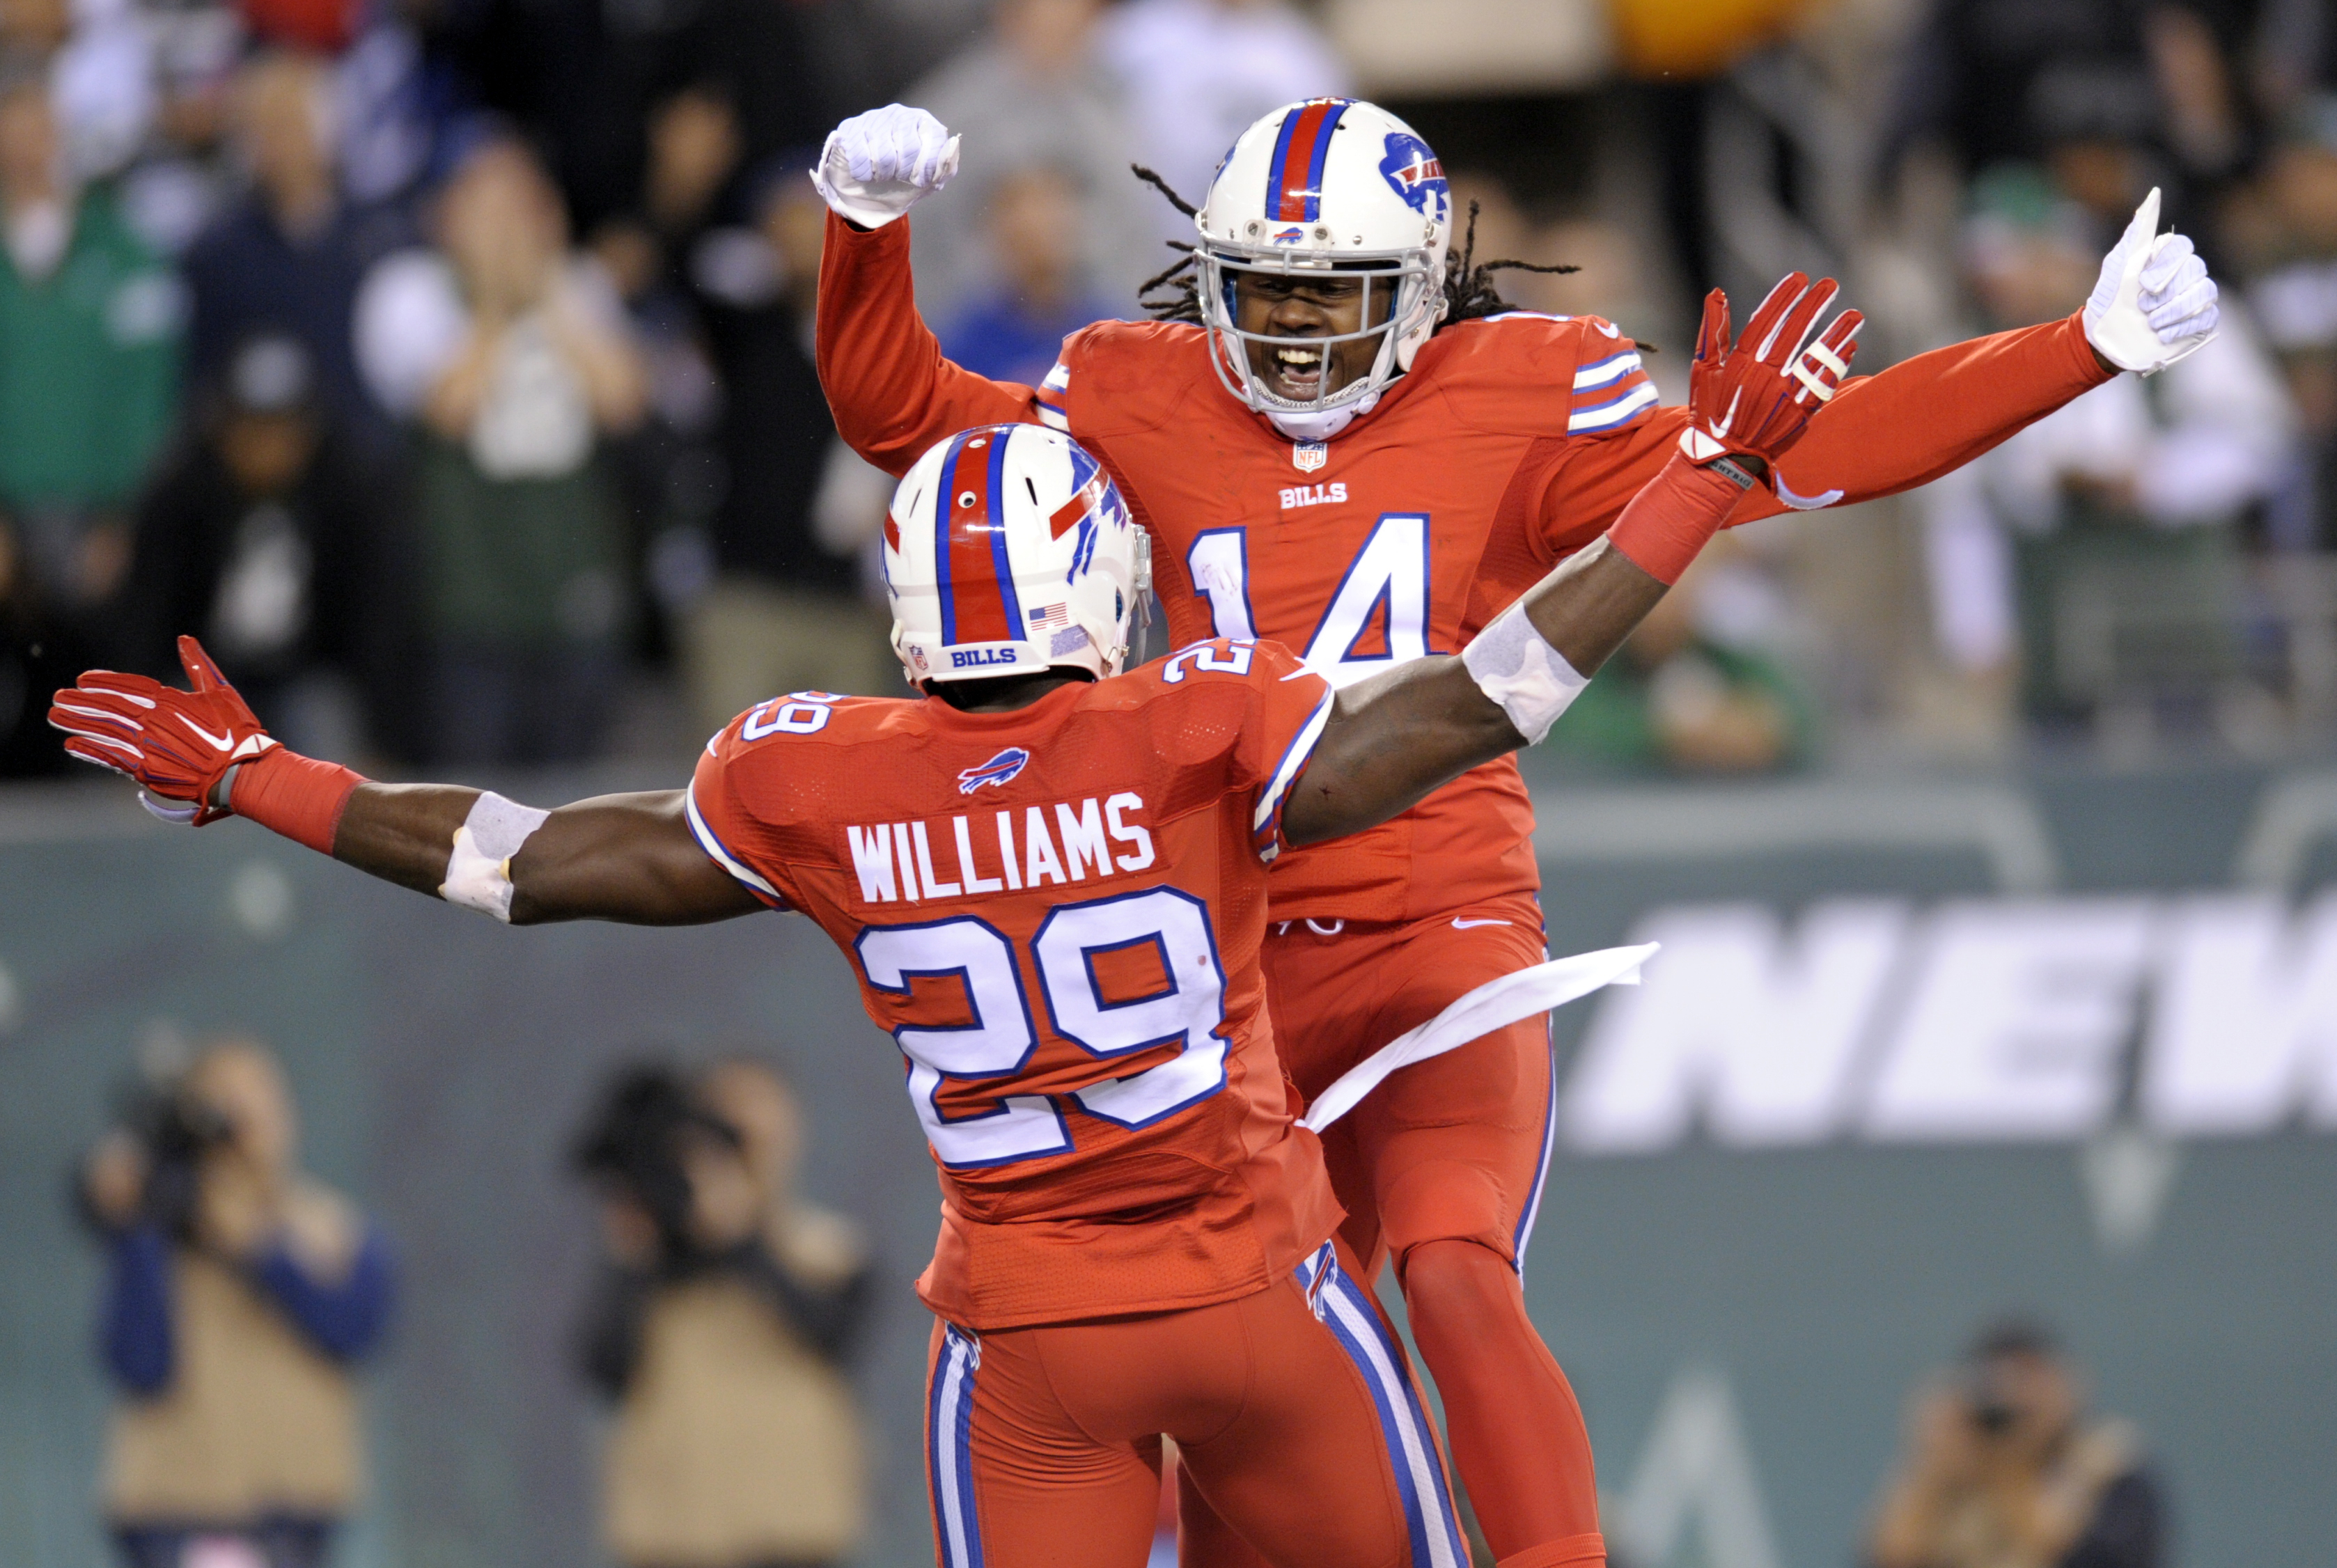 Buffalo Bills running back Karlos Williams, front, and wide receiver Sammy Watkins celebrate Williams' touchdown catch against the New York Jets during the second half of an NFL football game, Thursday, Nov. 12, 2015, in East Rutherford, N.J. (AP Photo/Bi